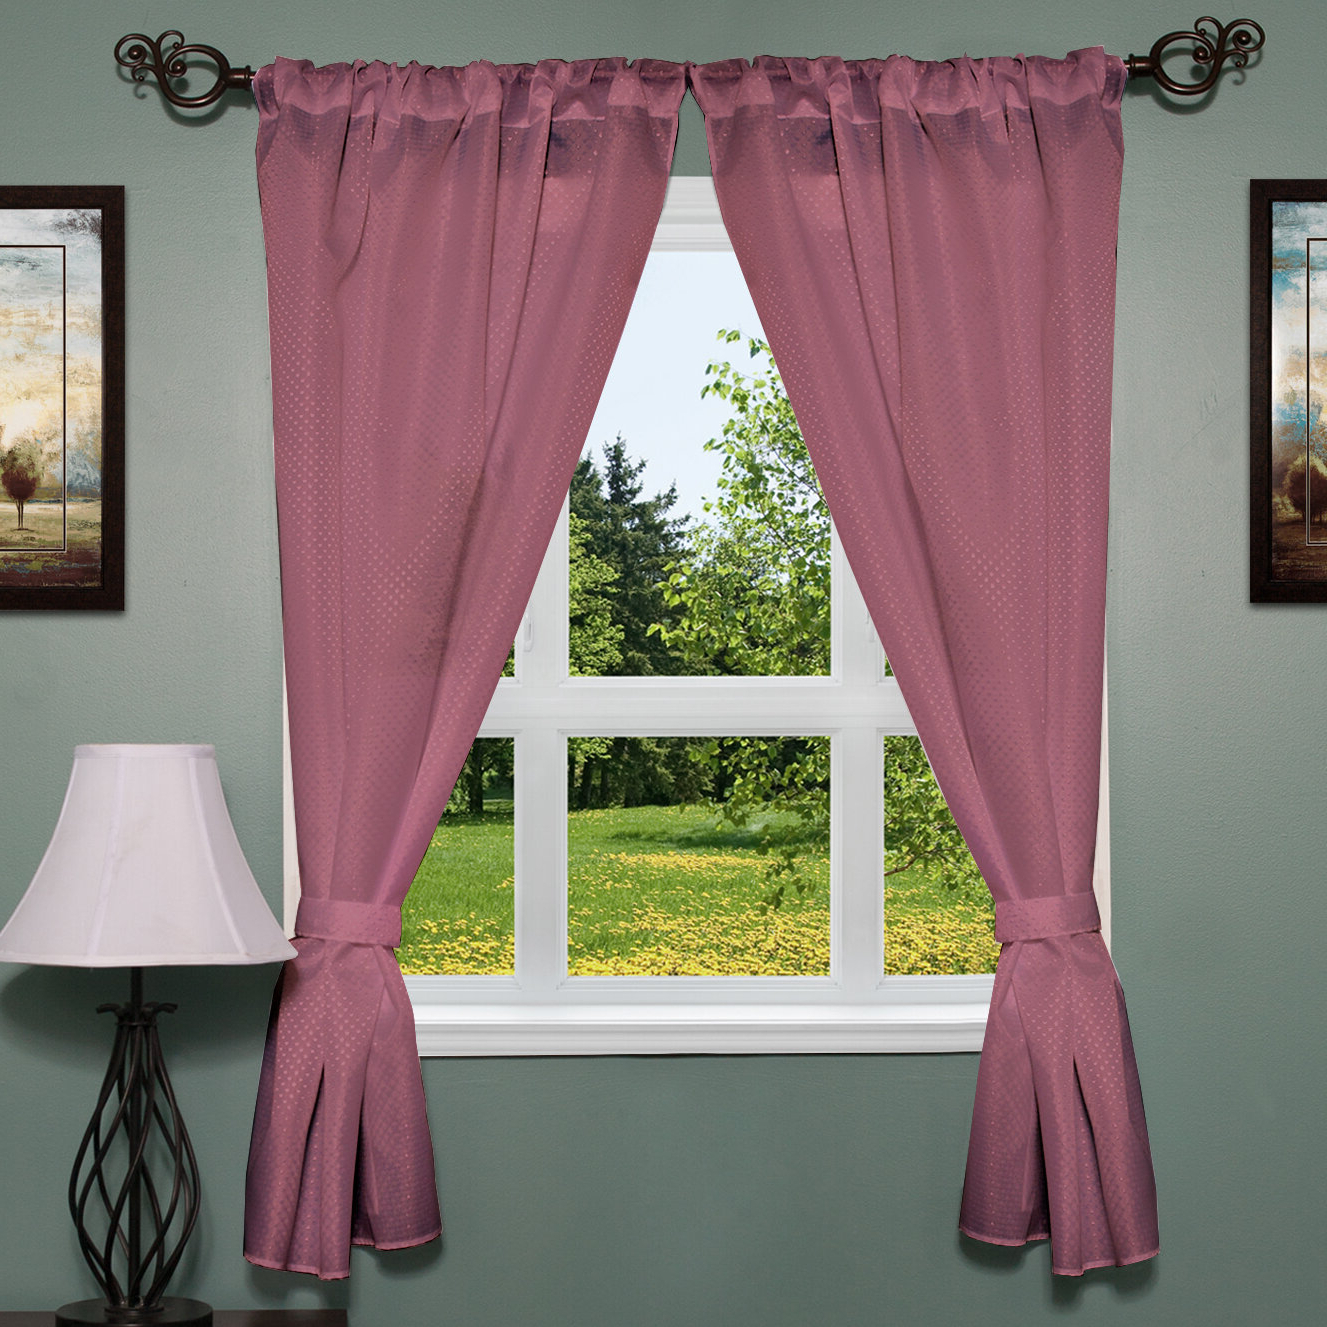 Newest Dallastown Elegant Subtle Fabric Curtain Panel Intended For Classic Hotel Quality Water Resistant Fabric Curtains Set With Tiebacks (View 19 of 20)